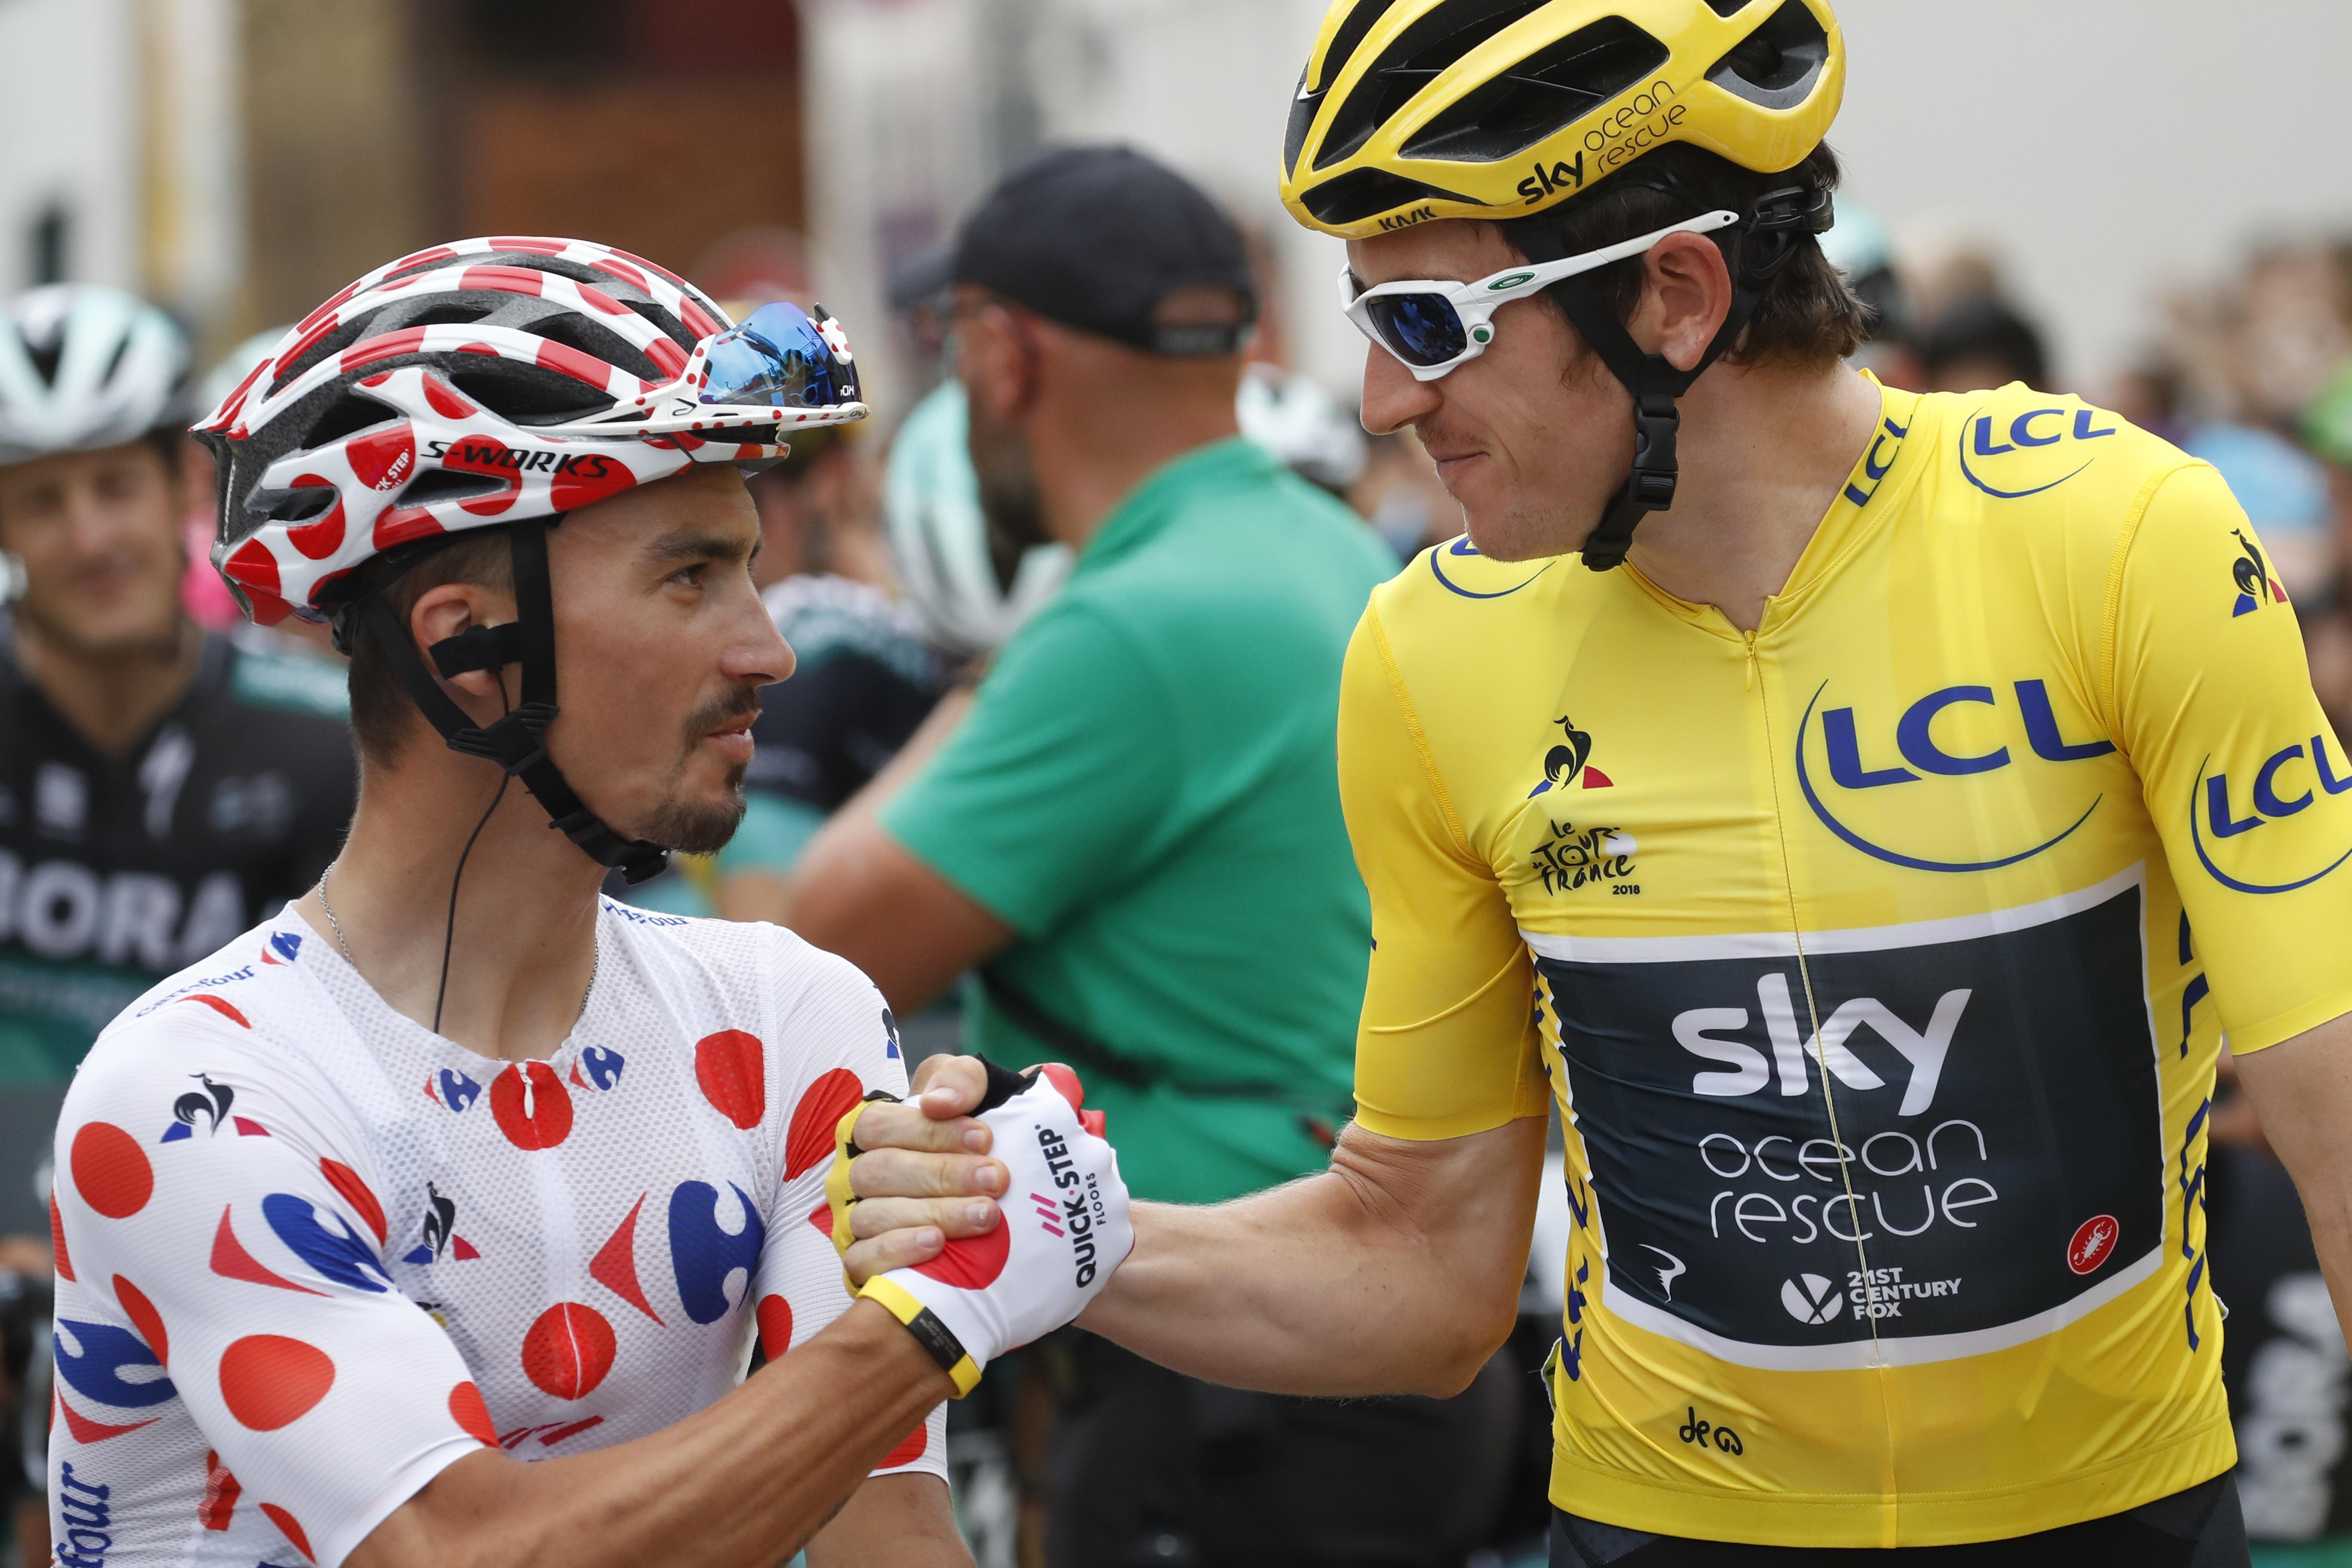 Julian Alaphilippe in the polka-dot climber's jersey shakes hands with 2018 champ Thomas